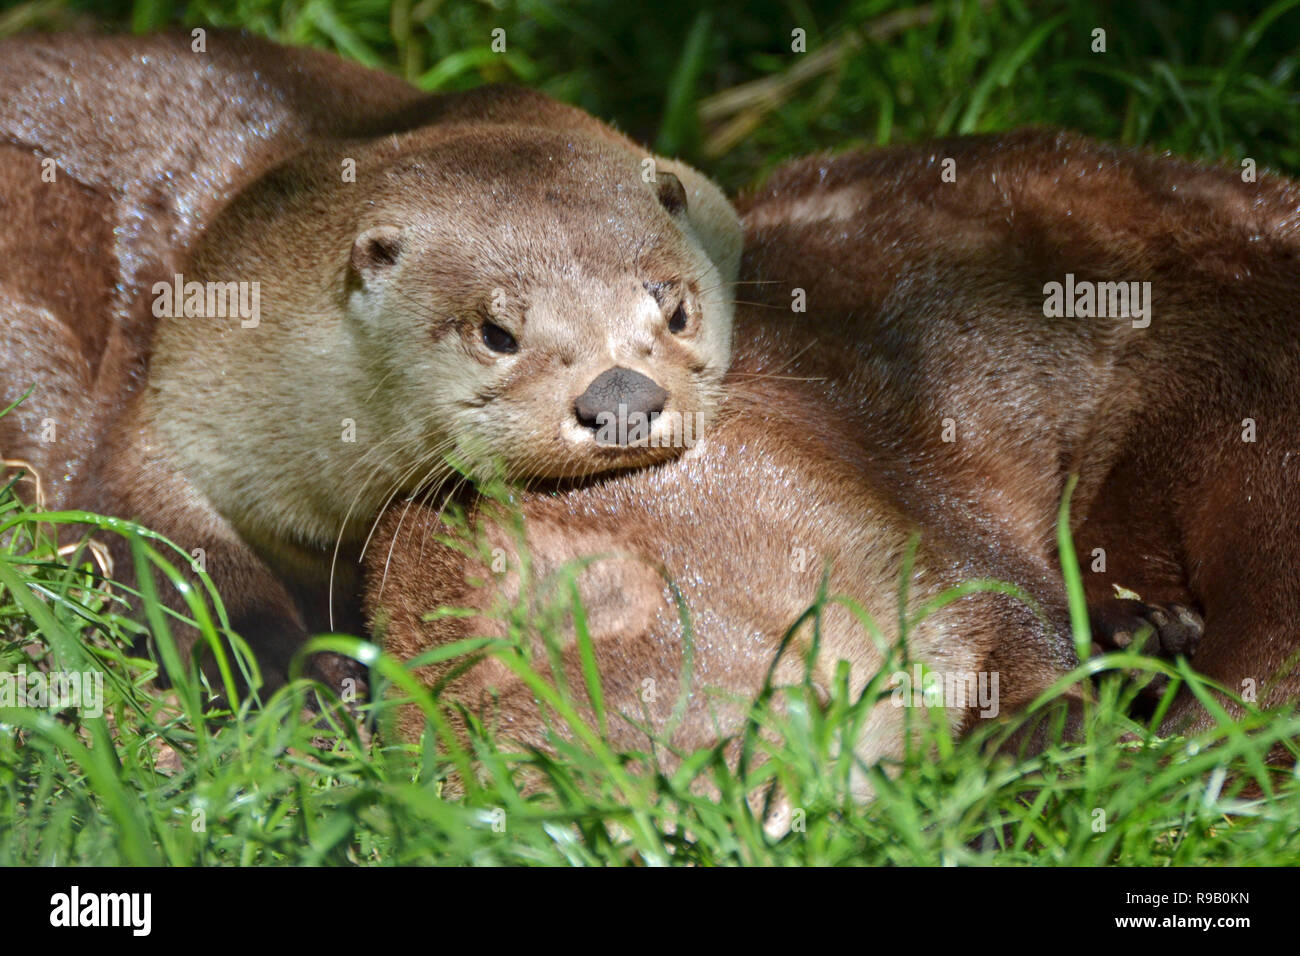 Giant Otters from South America at the New Forest Wildlife Park Stock Photo